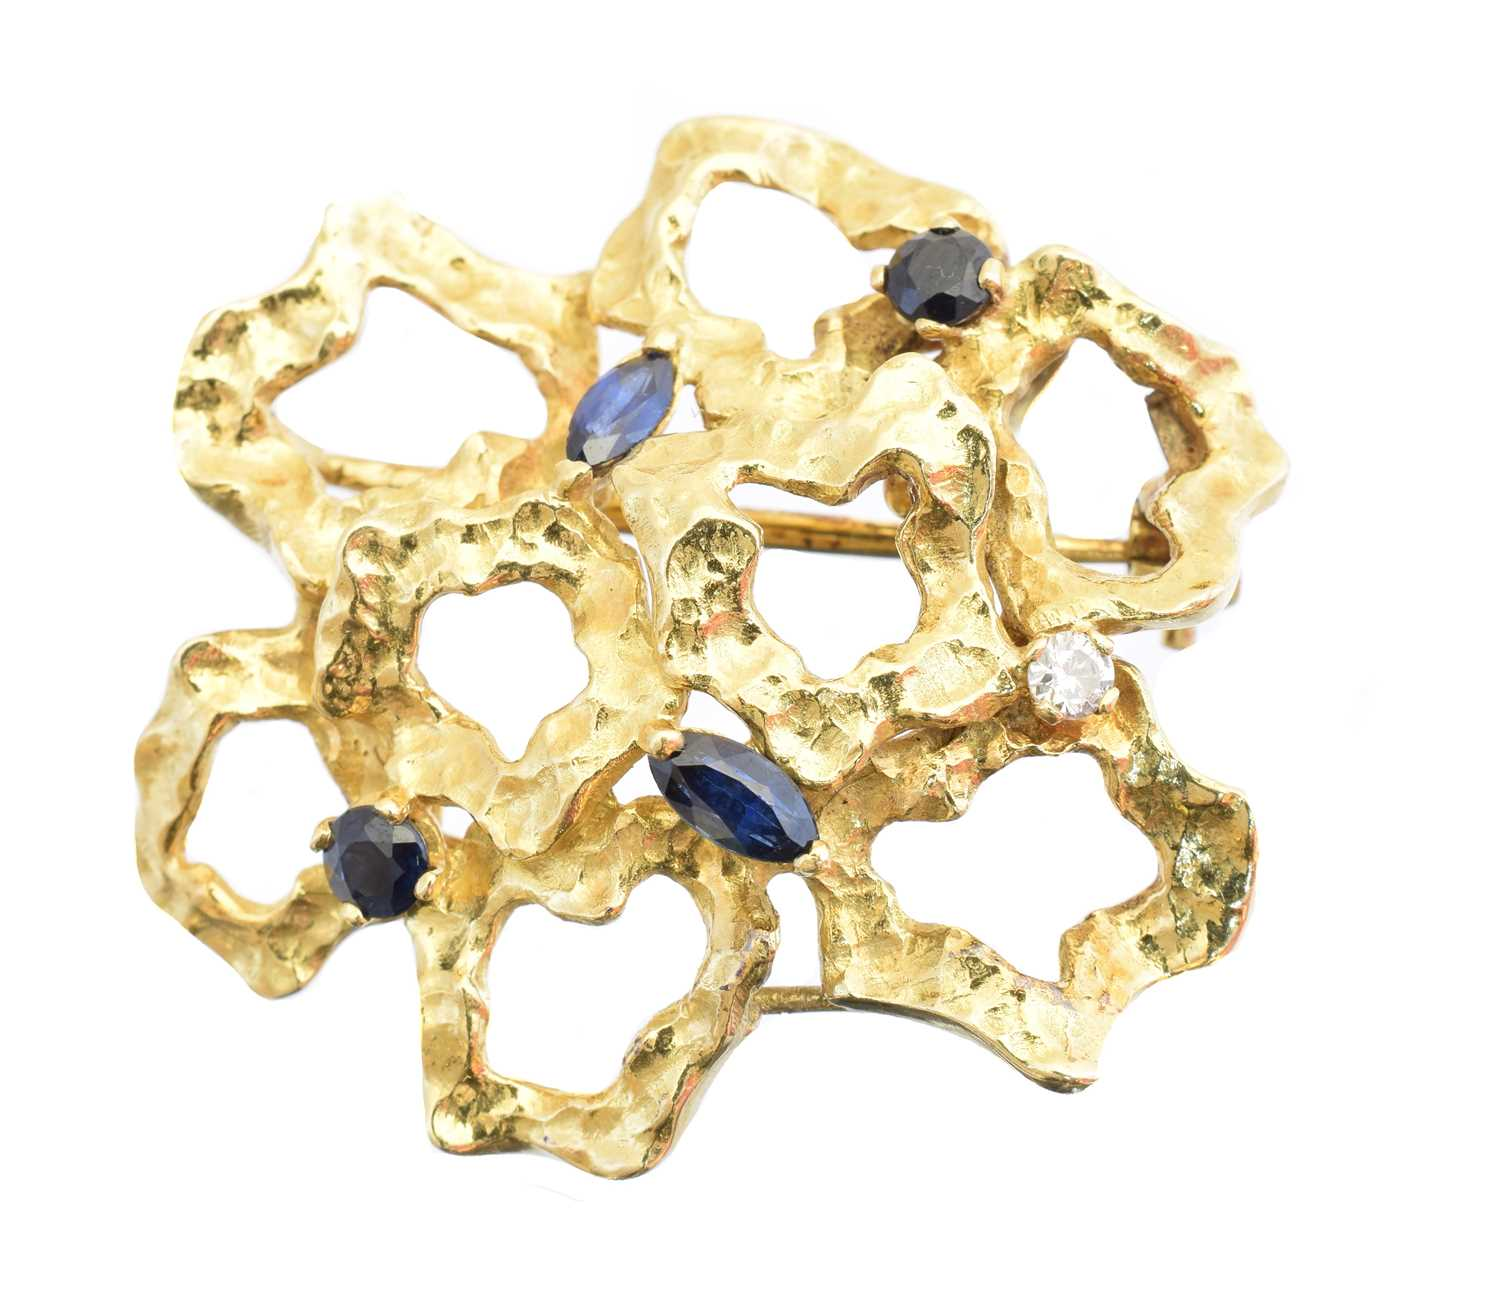 Lot A 1960s sapphire and diamond brooch